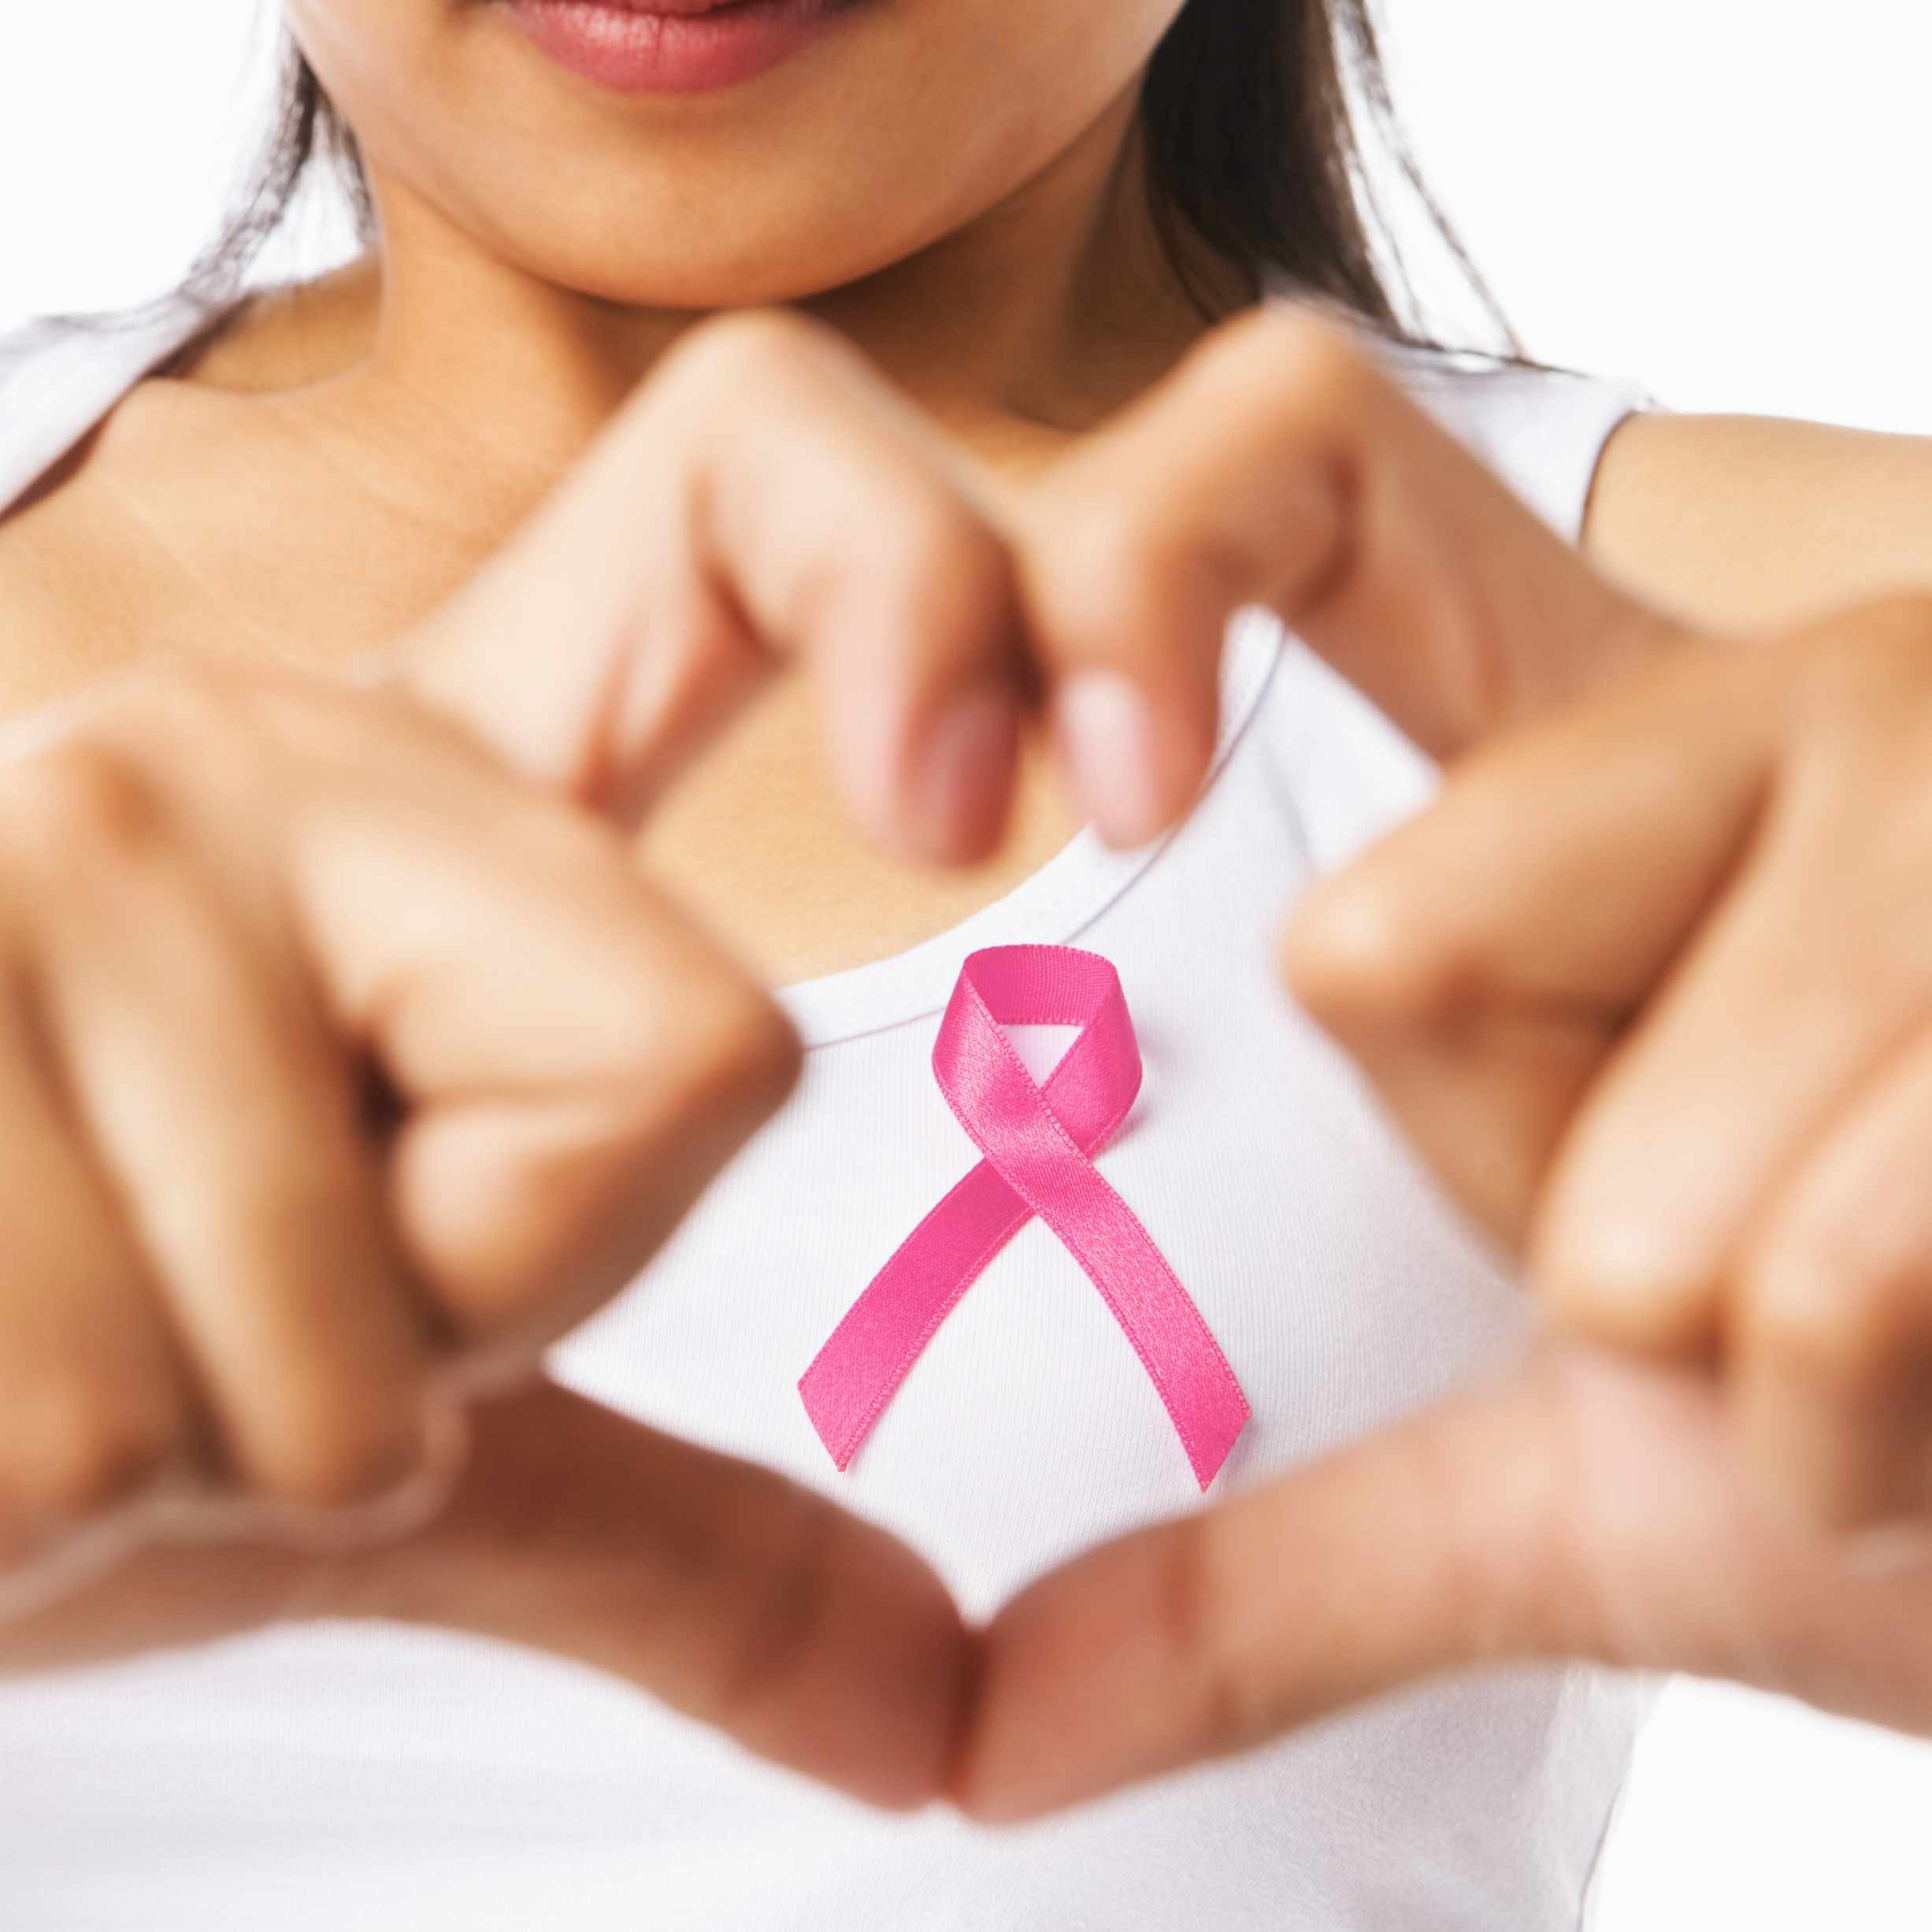 woman in t-shirt making heart symbol with hands and pink ribbon, representing breast health